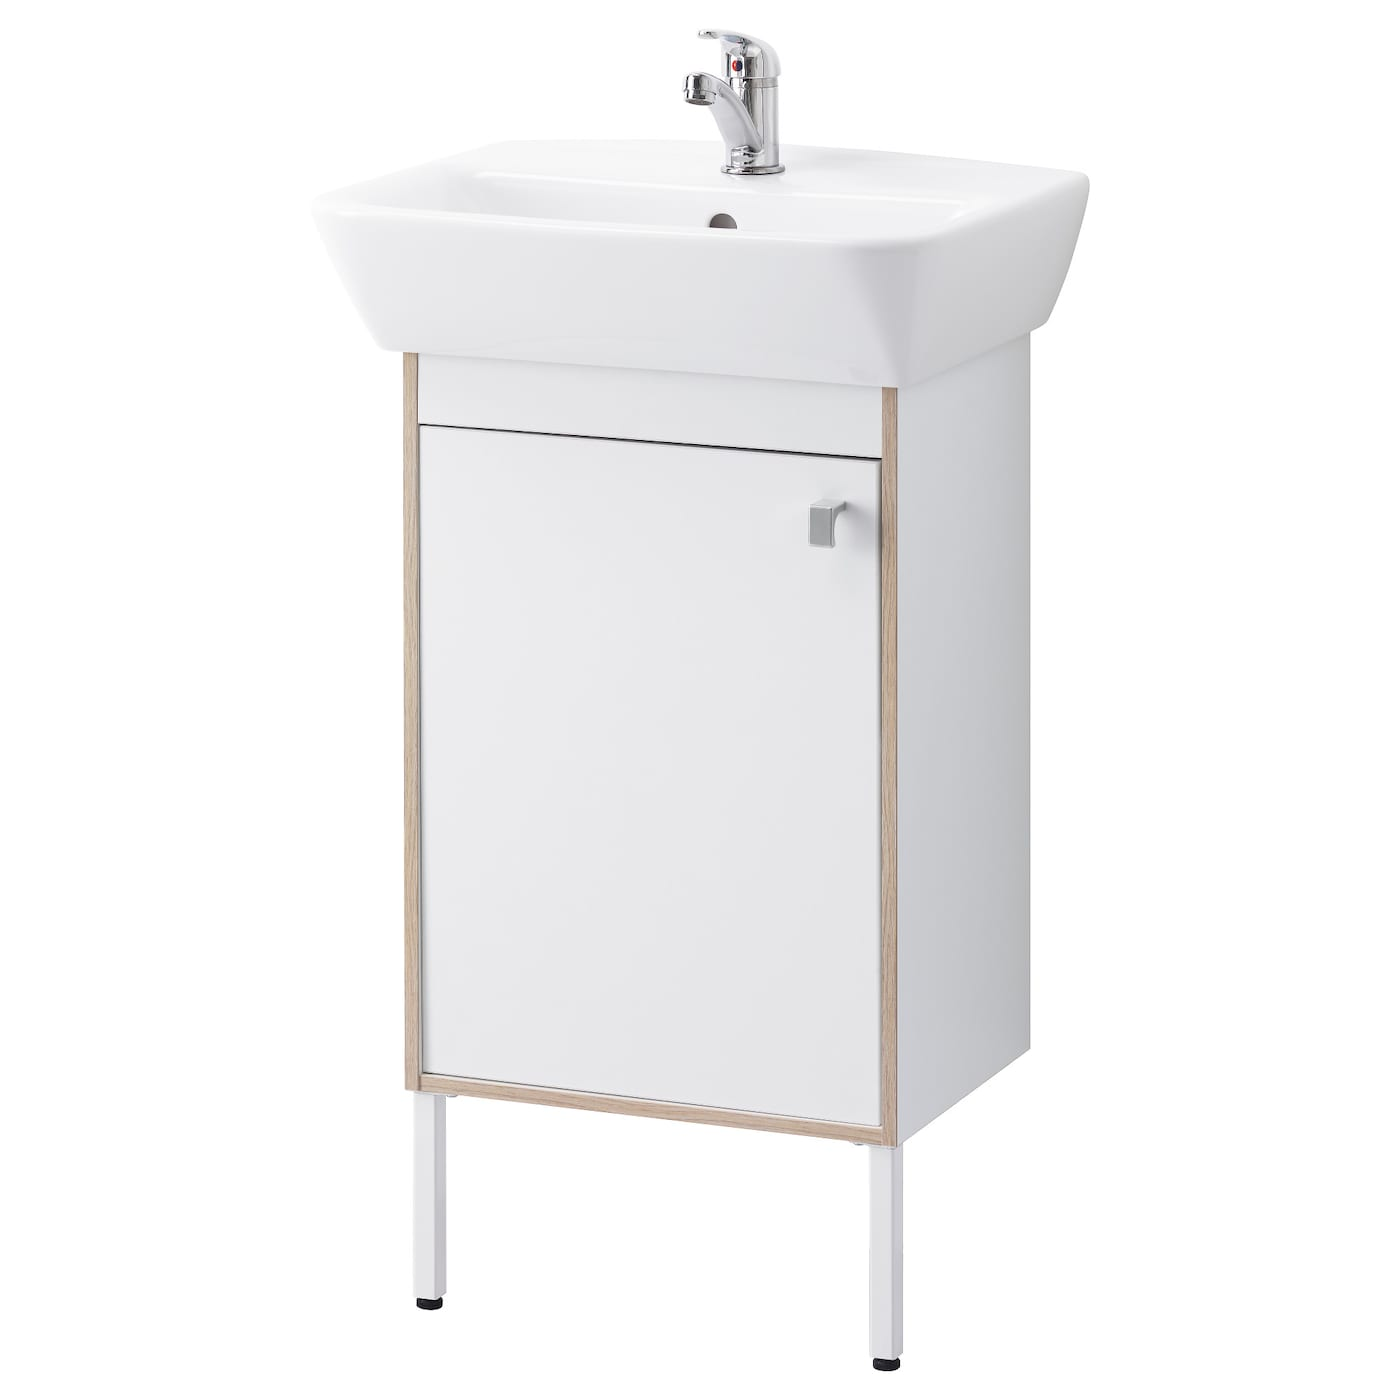 bathroom sink units ikea tyngen washbasin cabinet with 1 door white 51x40x88 cm ikea 16596